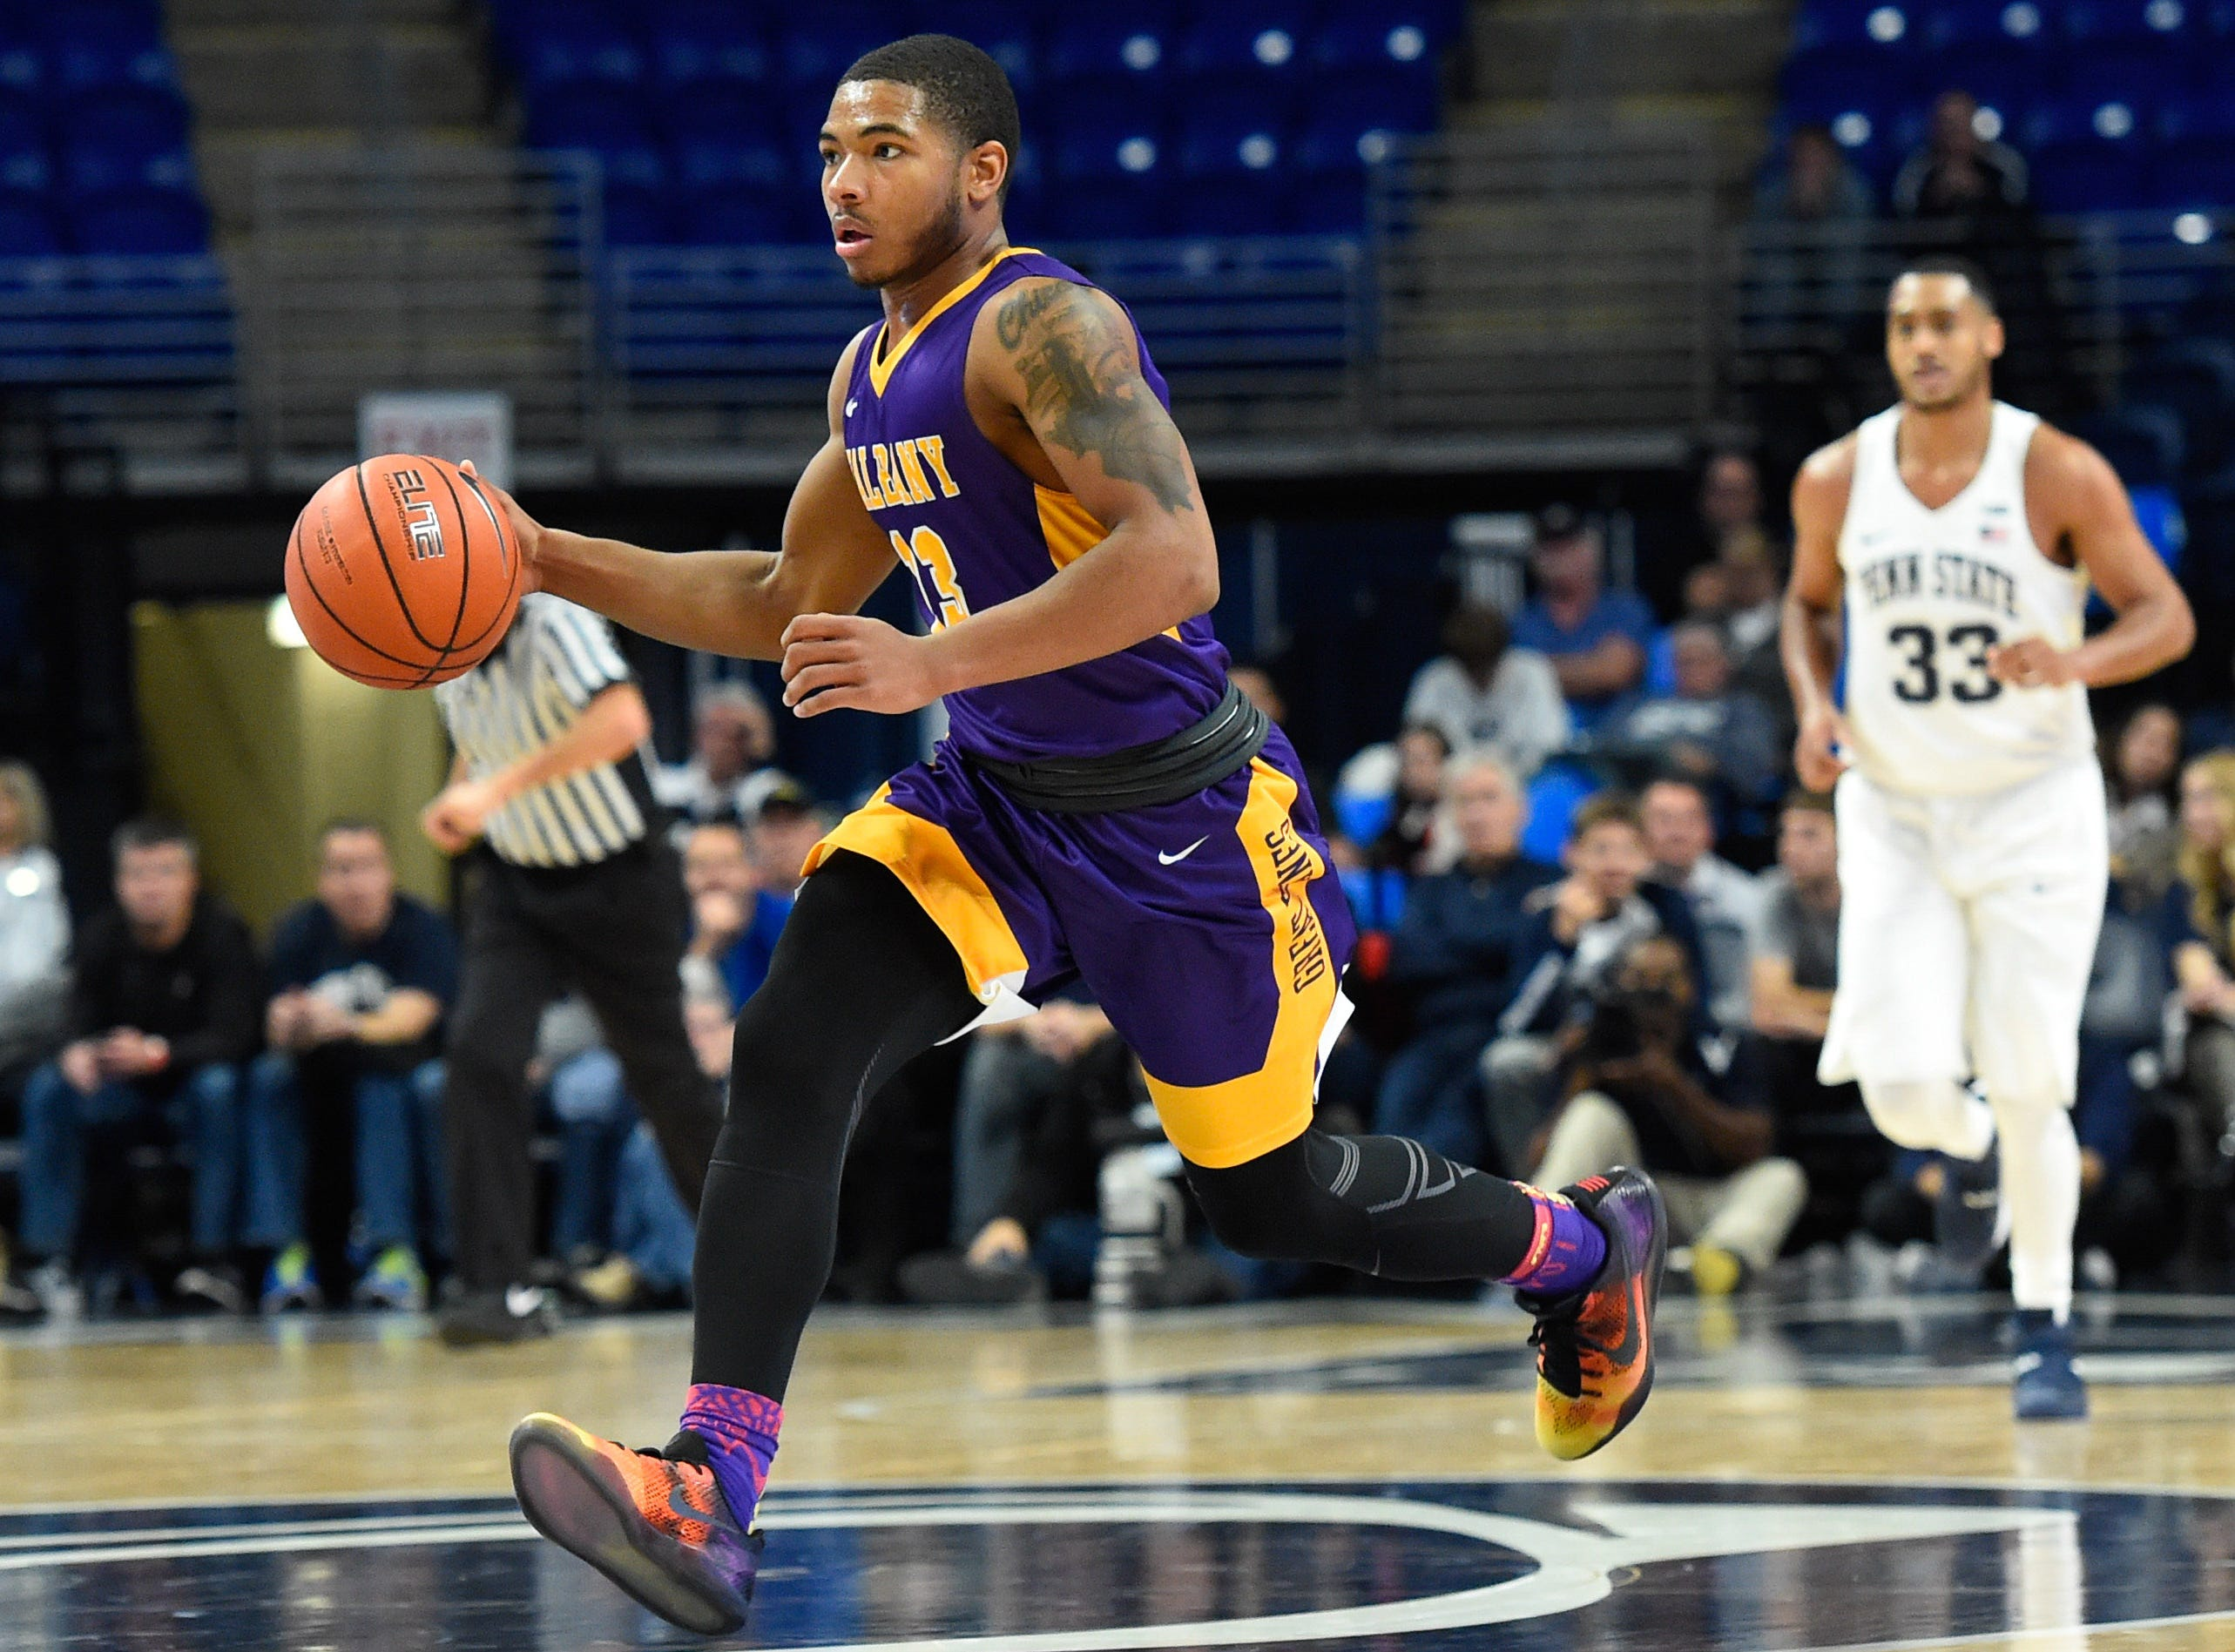 Nov 11, 2016; University Park, PA, USA; Albany Great Danes guard David Nichols (13) dribbles up the court against the Penn State Nittany Lions during the second half at the Bryce Jordan Center. Albany defeated Penn State 87-81. Mandatory Credit: Rich Barnes-USA TODAY Sports